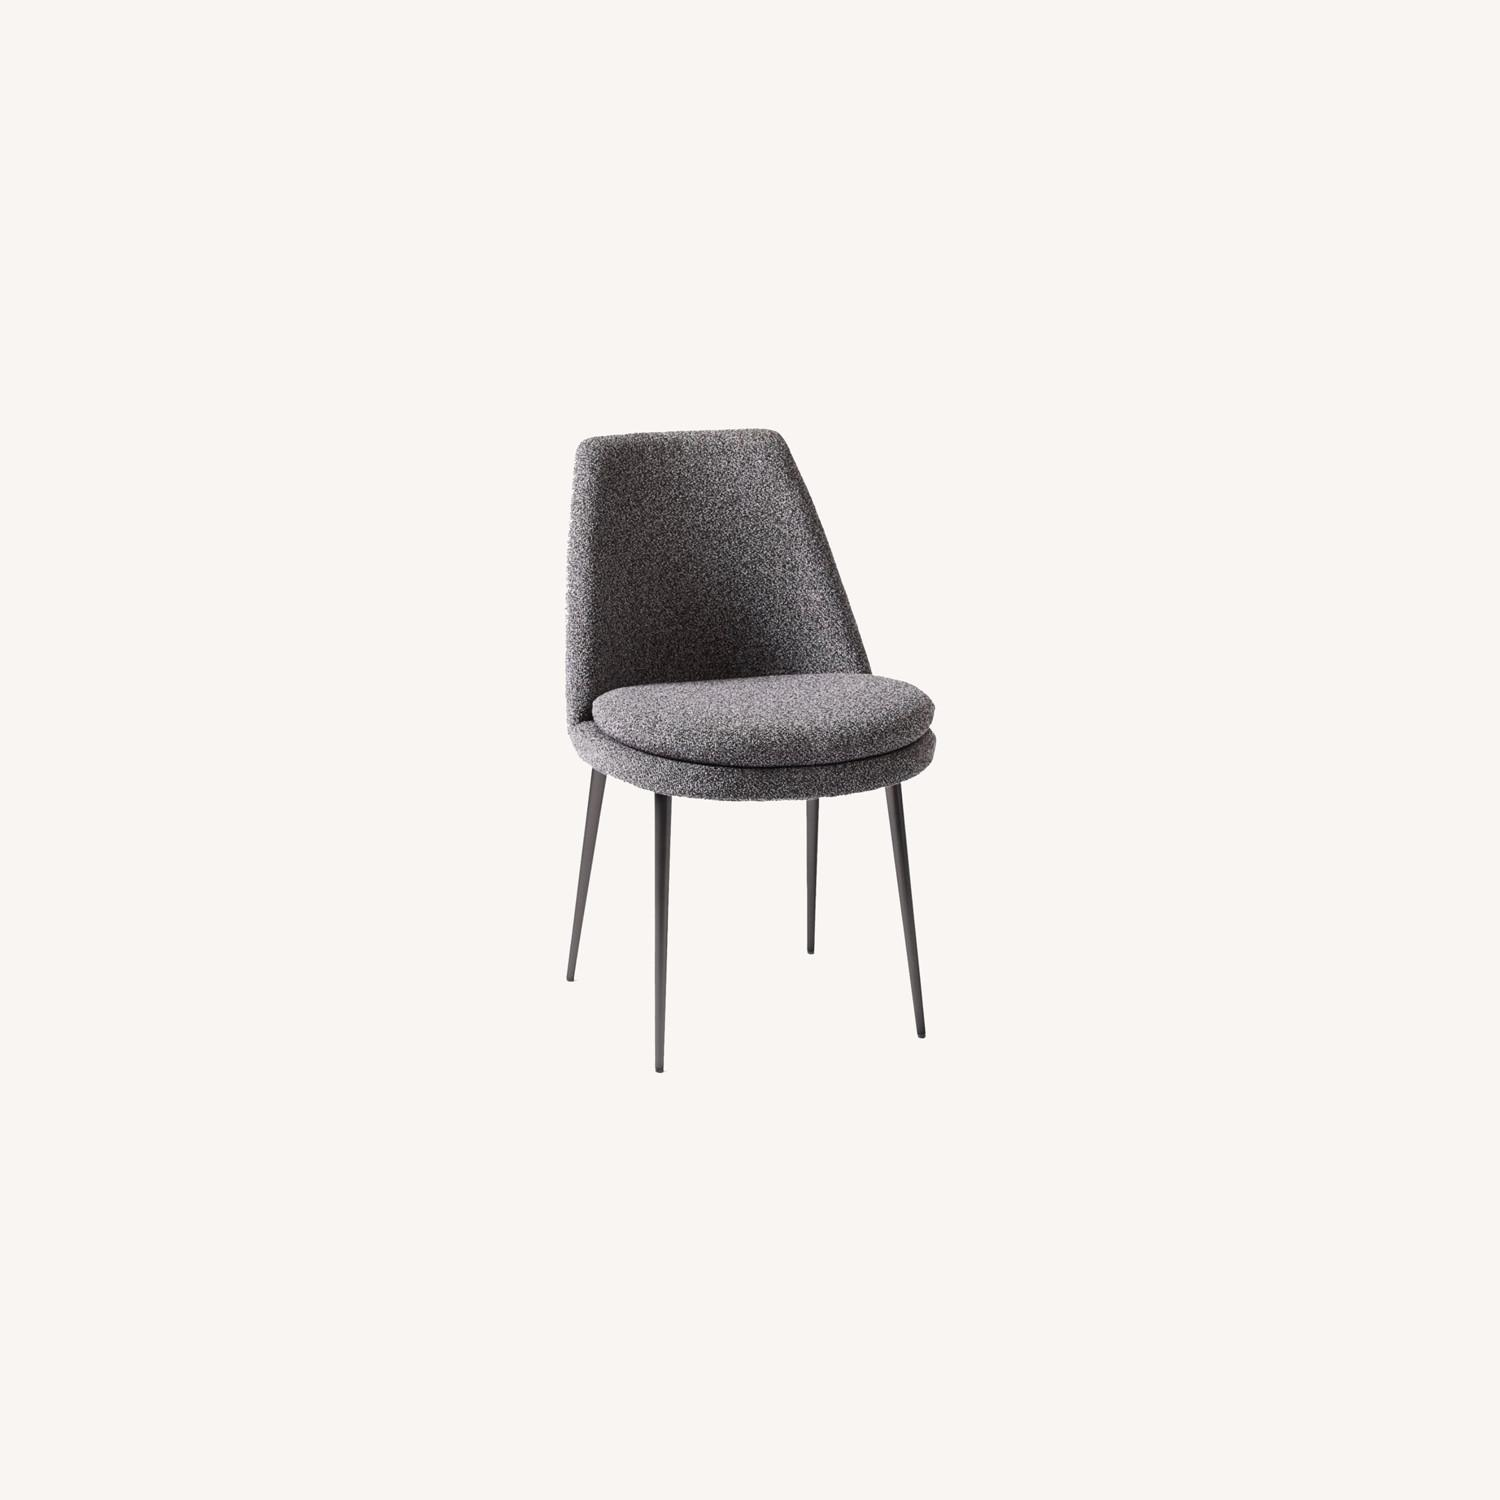 West Elm Finley Low Back Dining Chair - image-0